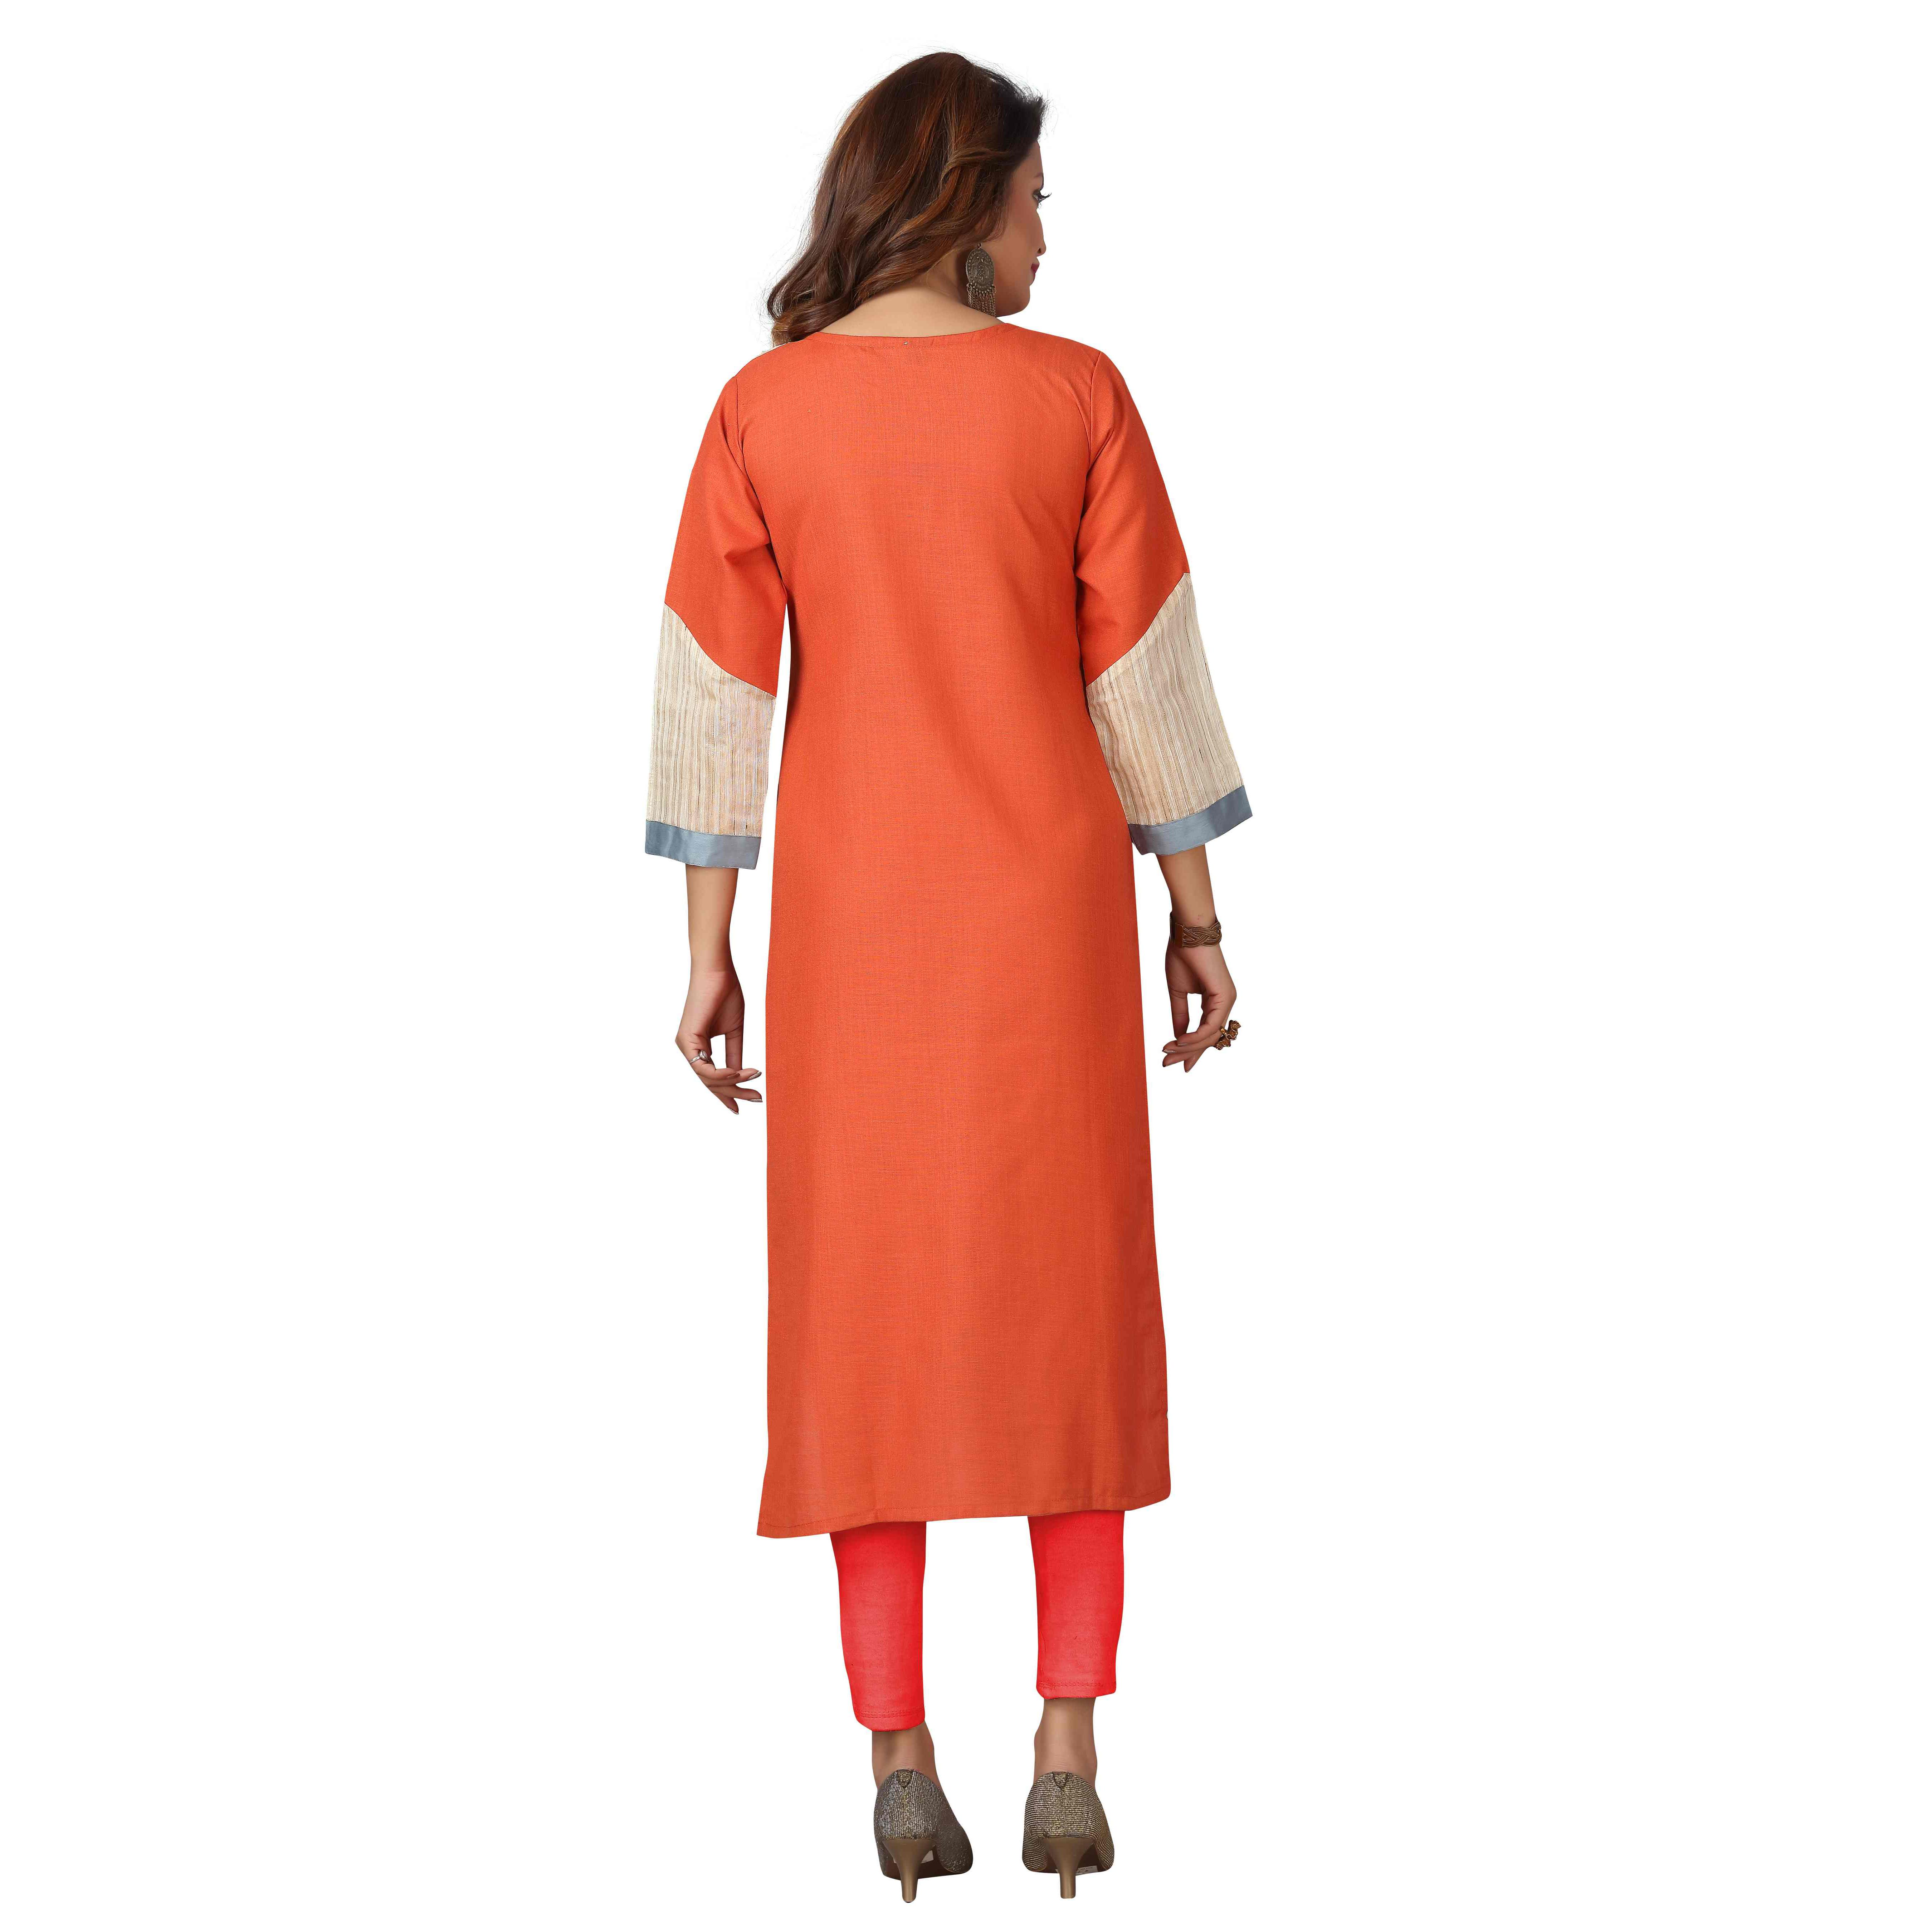 MAJESTIN Ladies Orange Colored Casual Wear Solid Calf Length Cotton Kurti